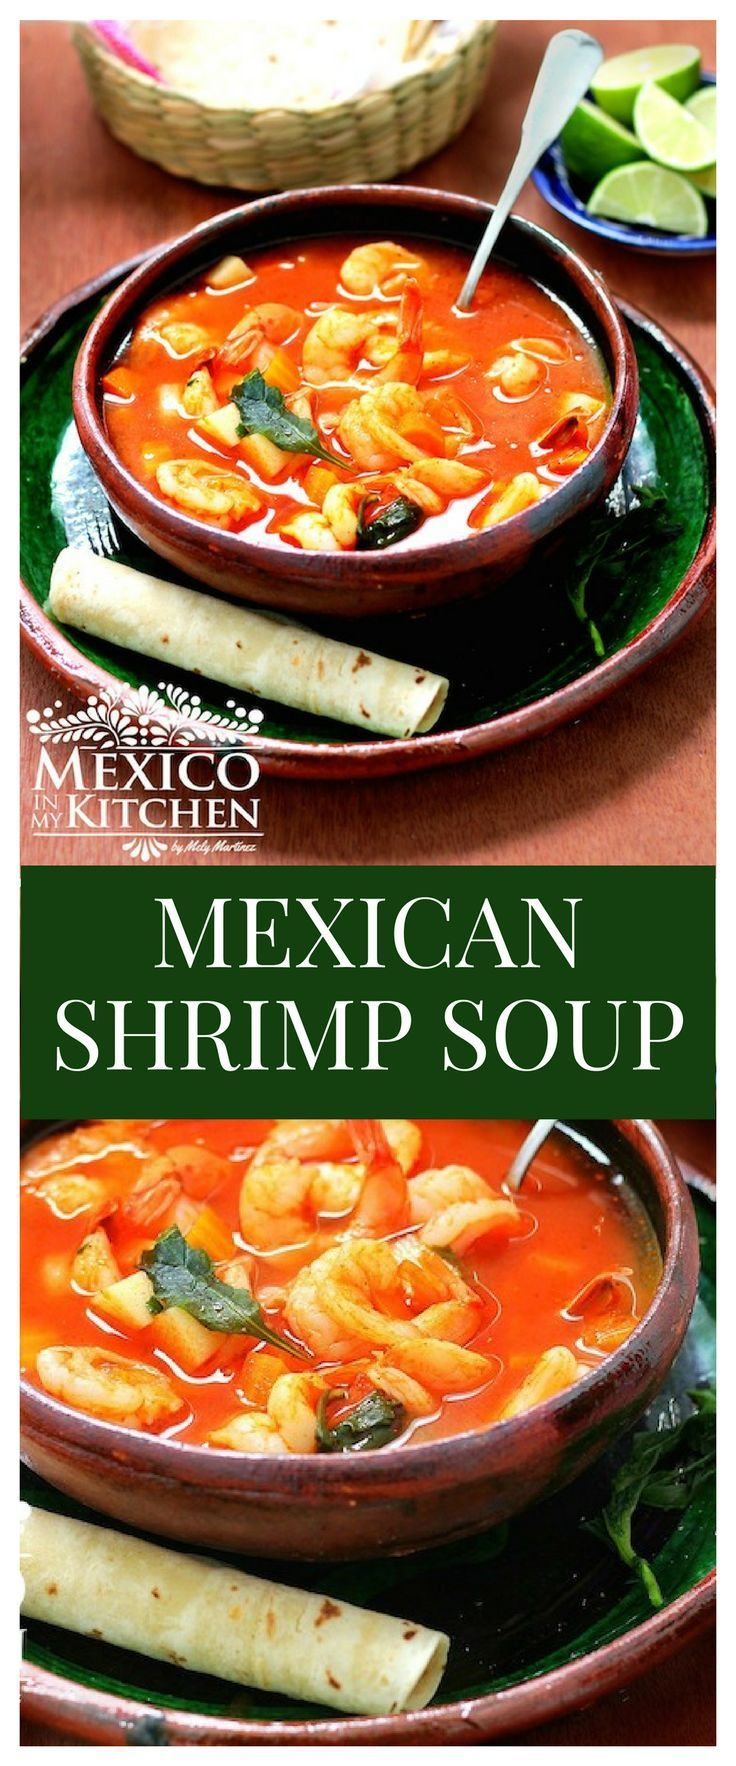 There are a multitude of ways shrimp soup is made in Mexico, and each region can have its own recipes. #recipe #mexican #food #soups